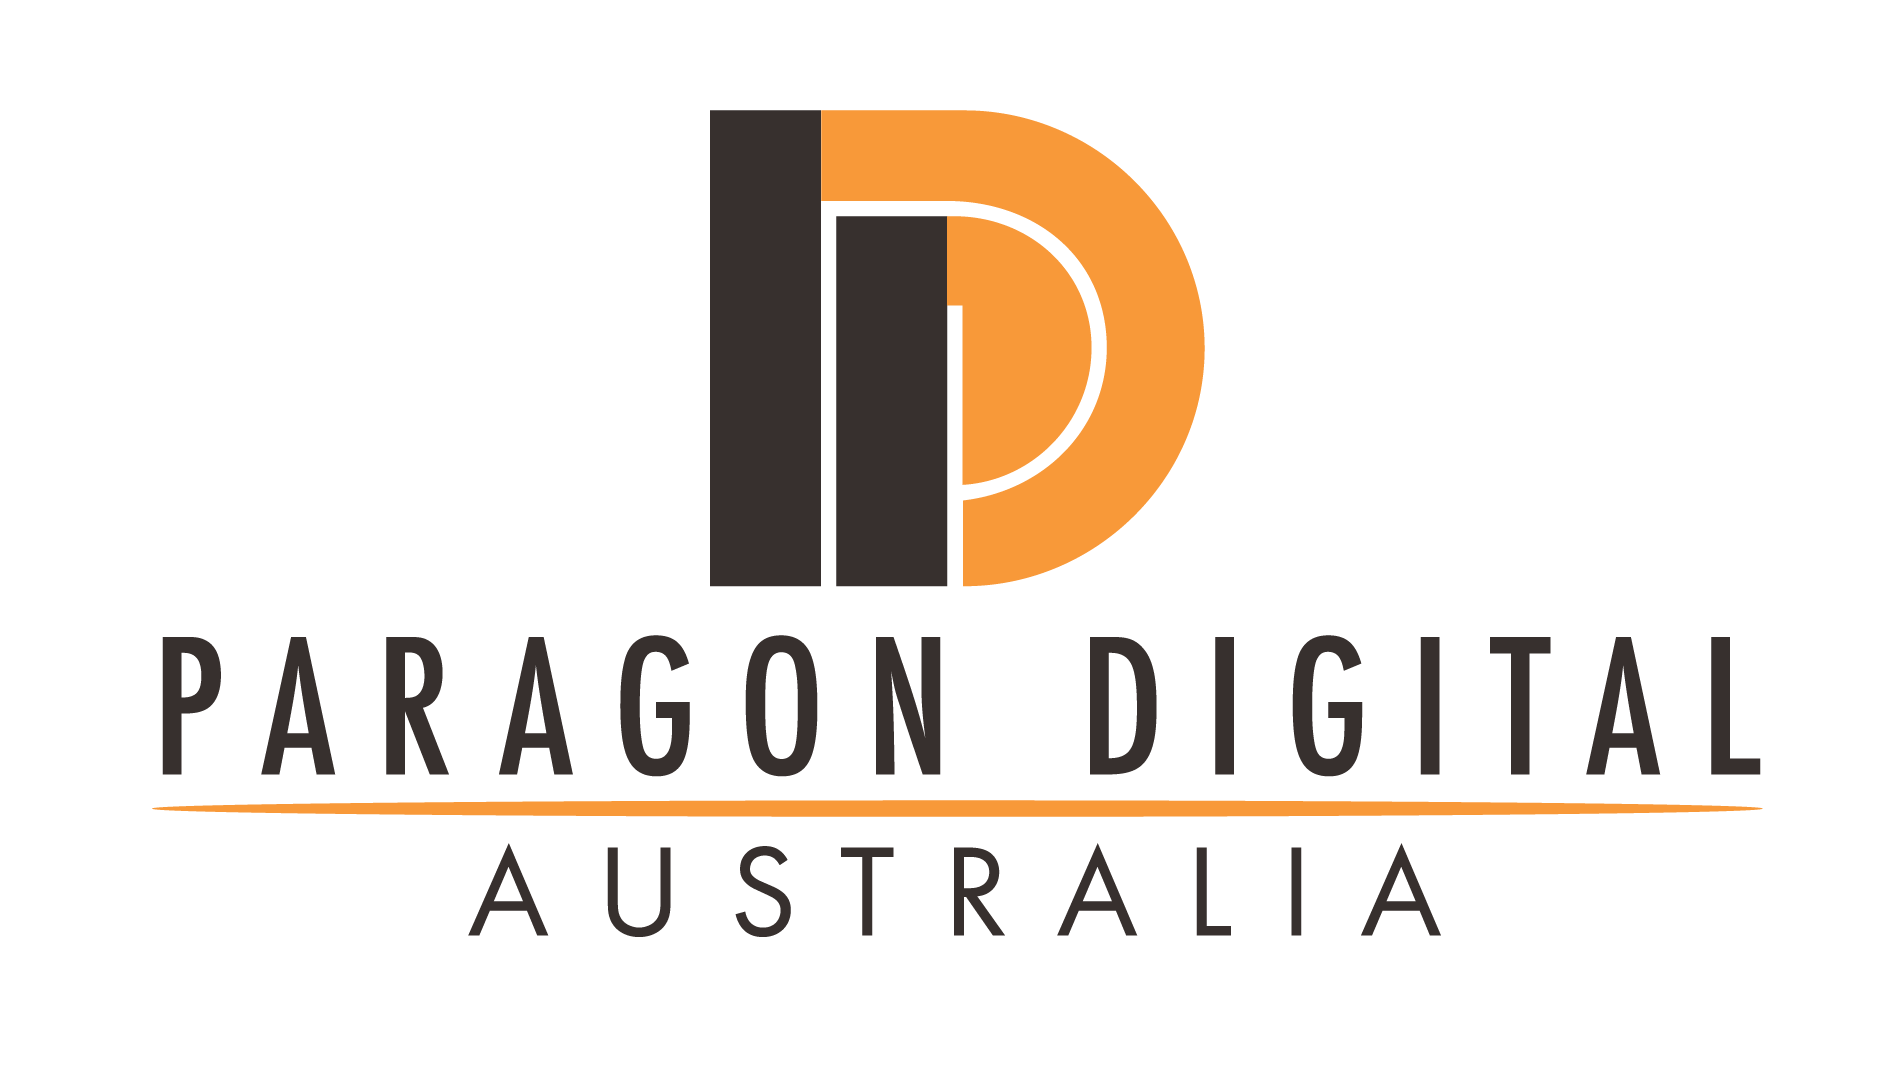 Paragon Digital Australia